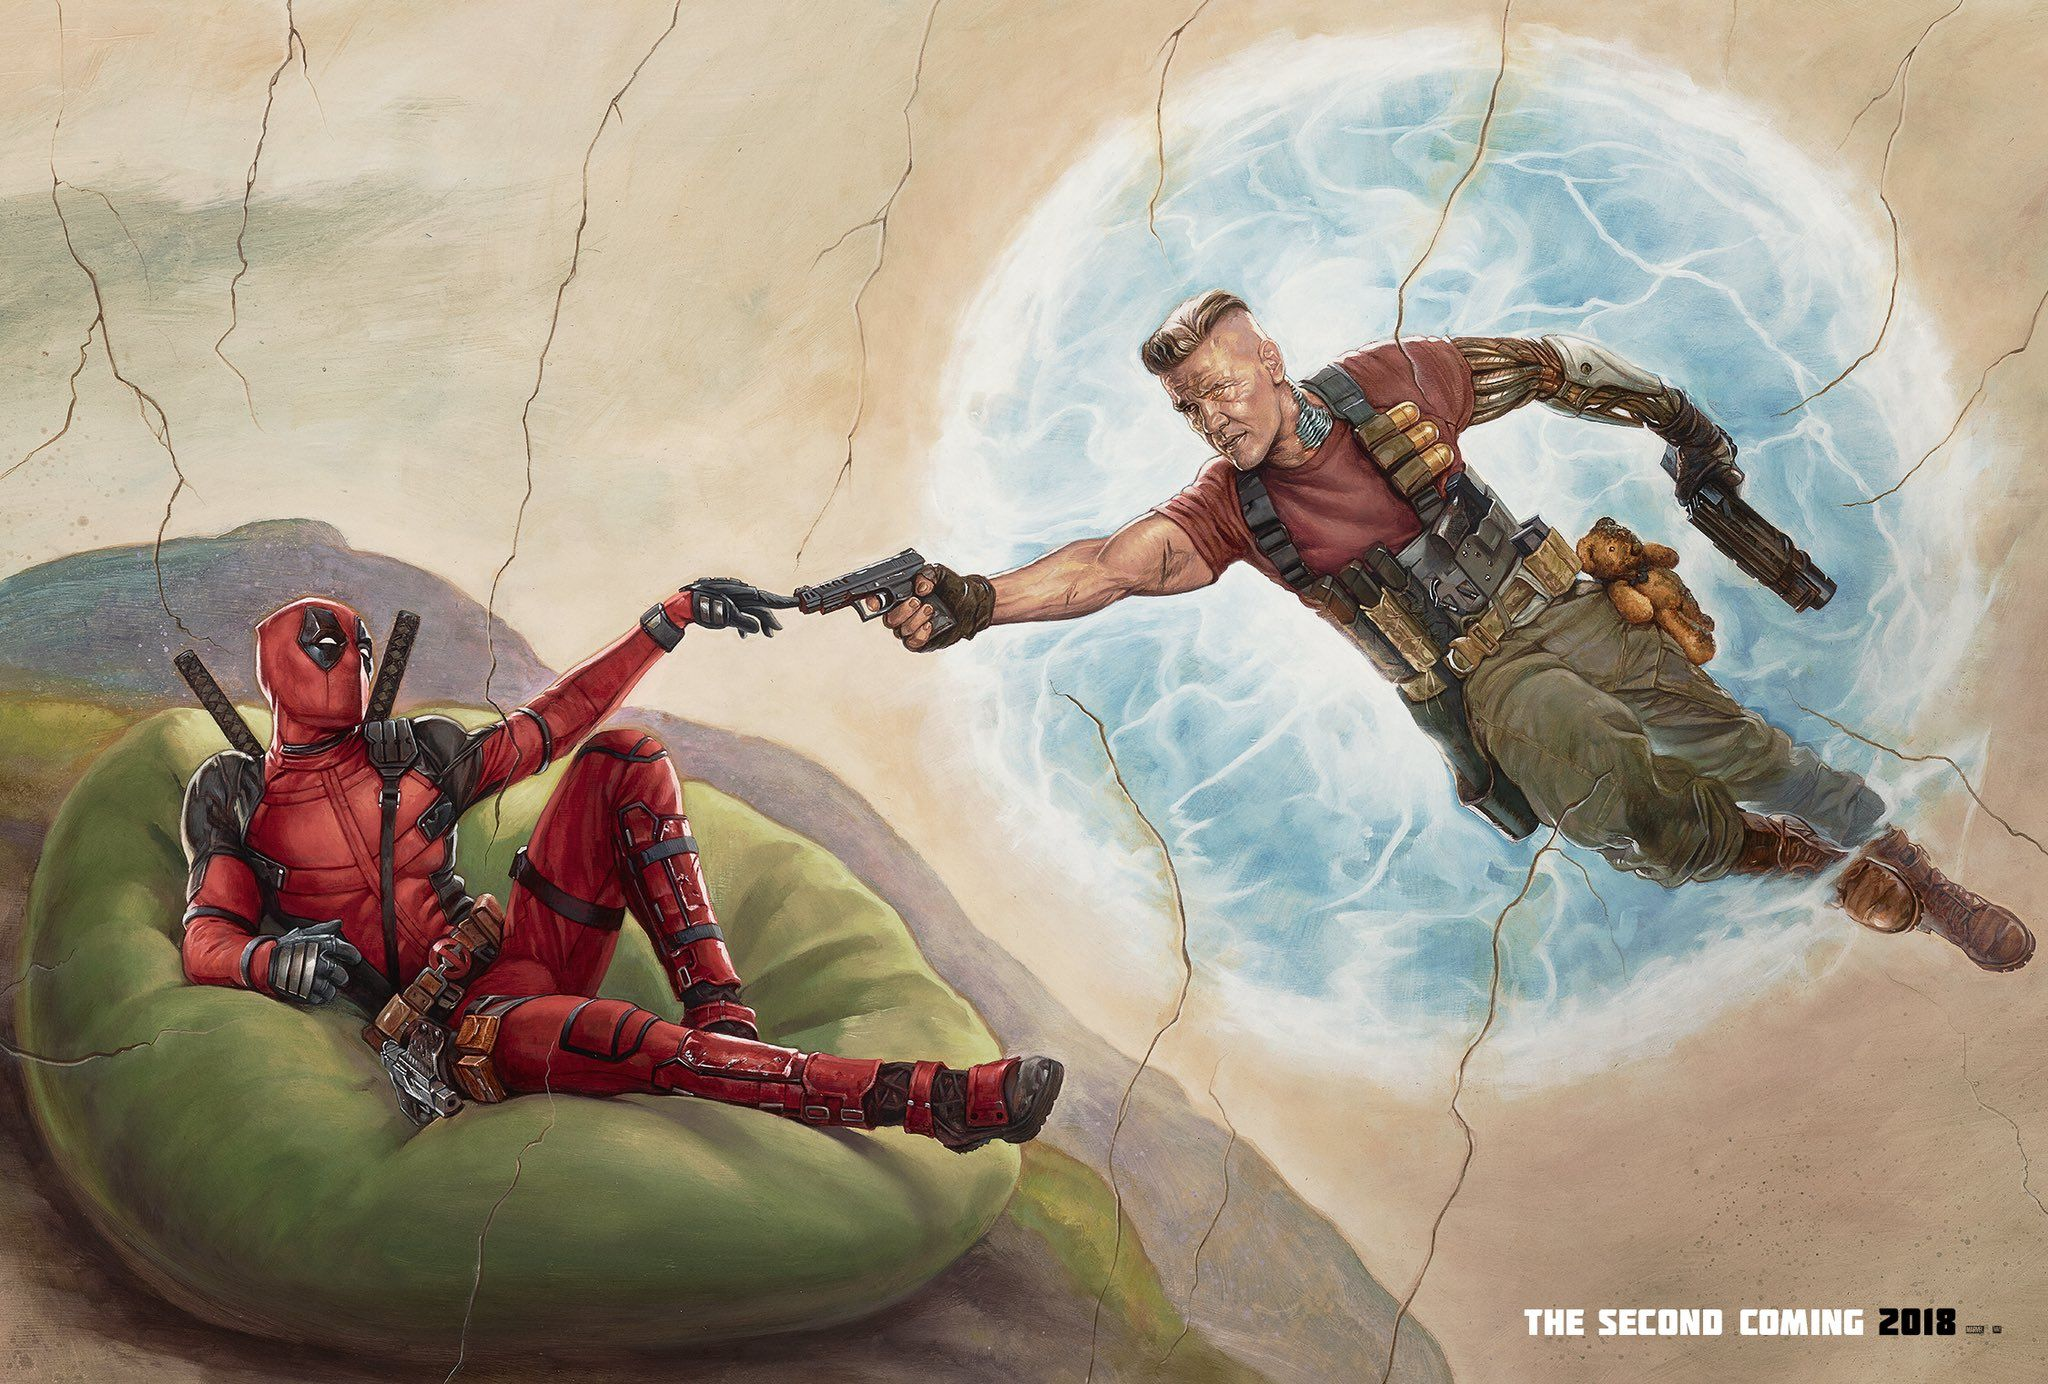 Ryan Reynolds Shares Cool New Deadpool 2 Poster